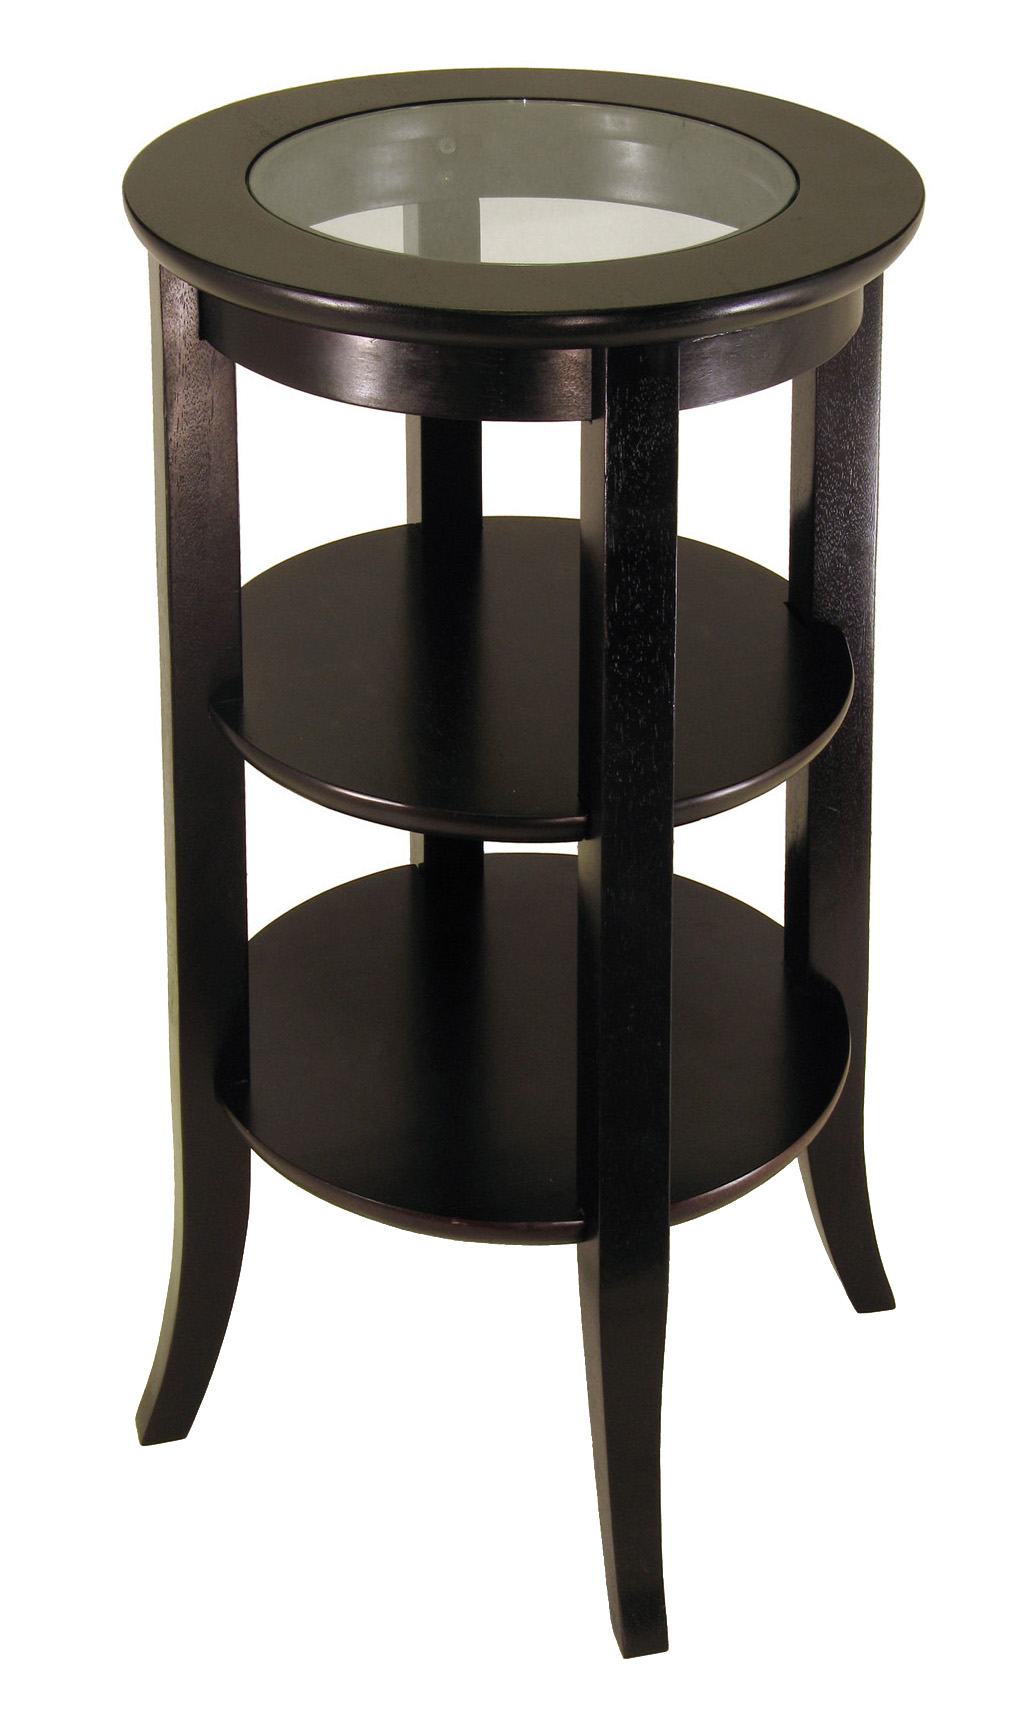 winsome sasha round accent table cappucino plans genoa inset glass two shelves small decorative storage cabinets entry way wooden bedside designs champagne ice bucket cherry wood